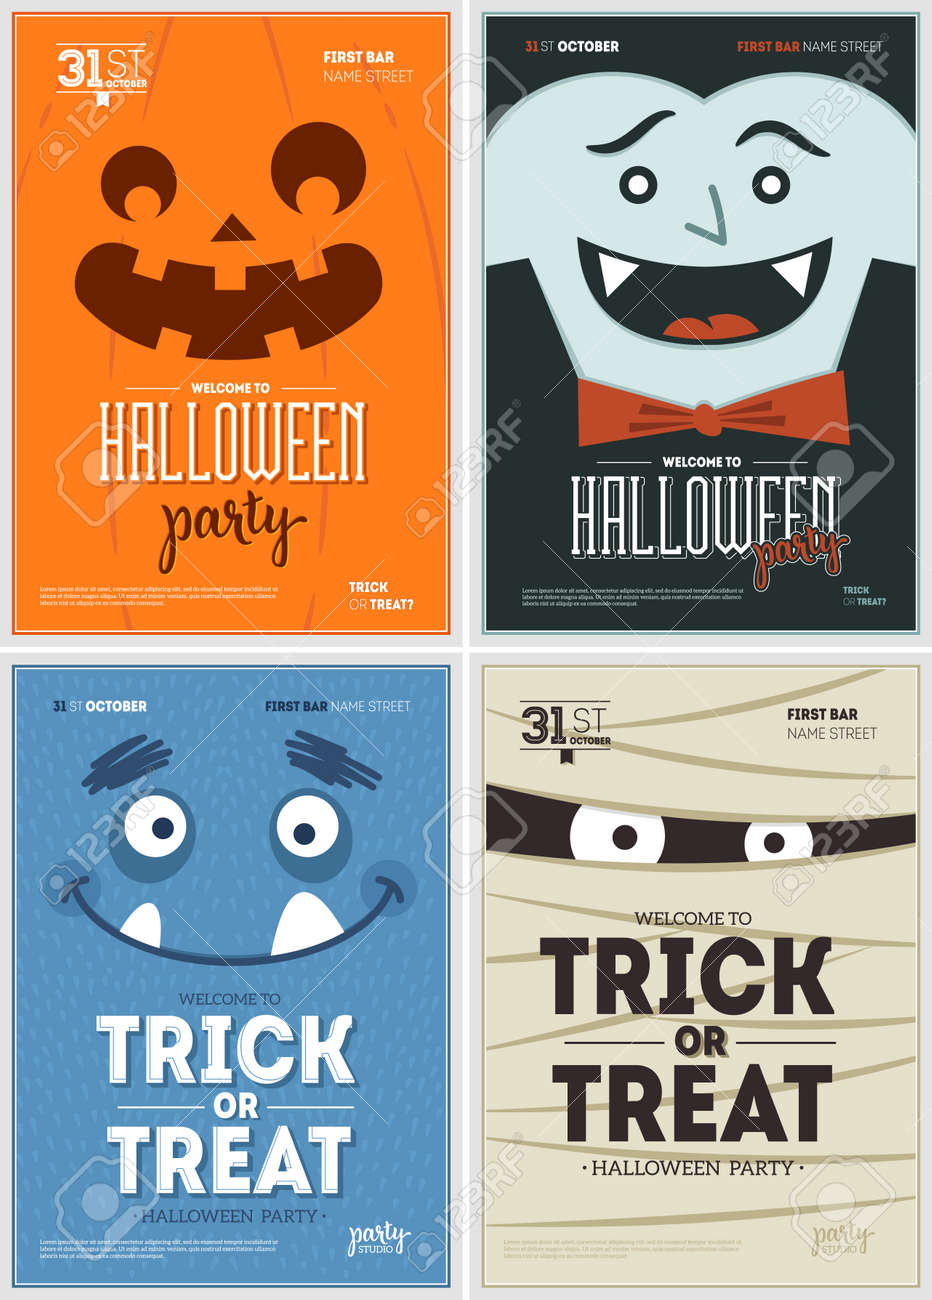 Halloween party fun posters collection. Halloween design template. Vector illustration - 108043965